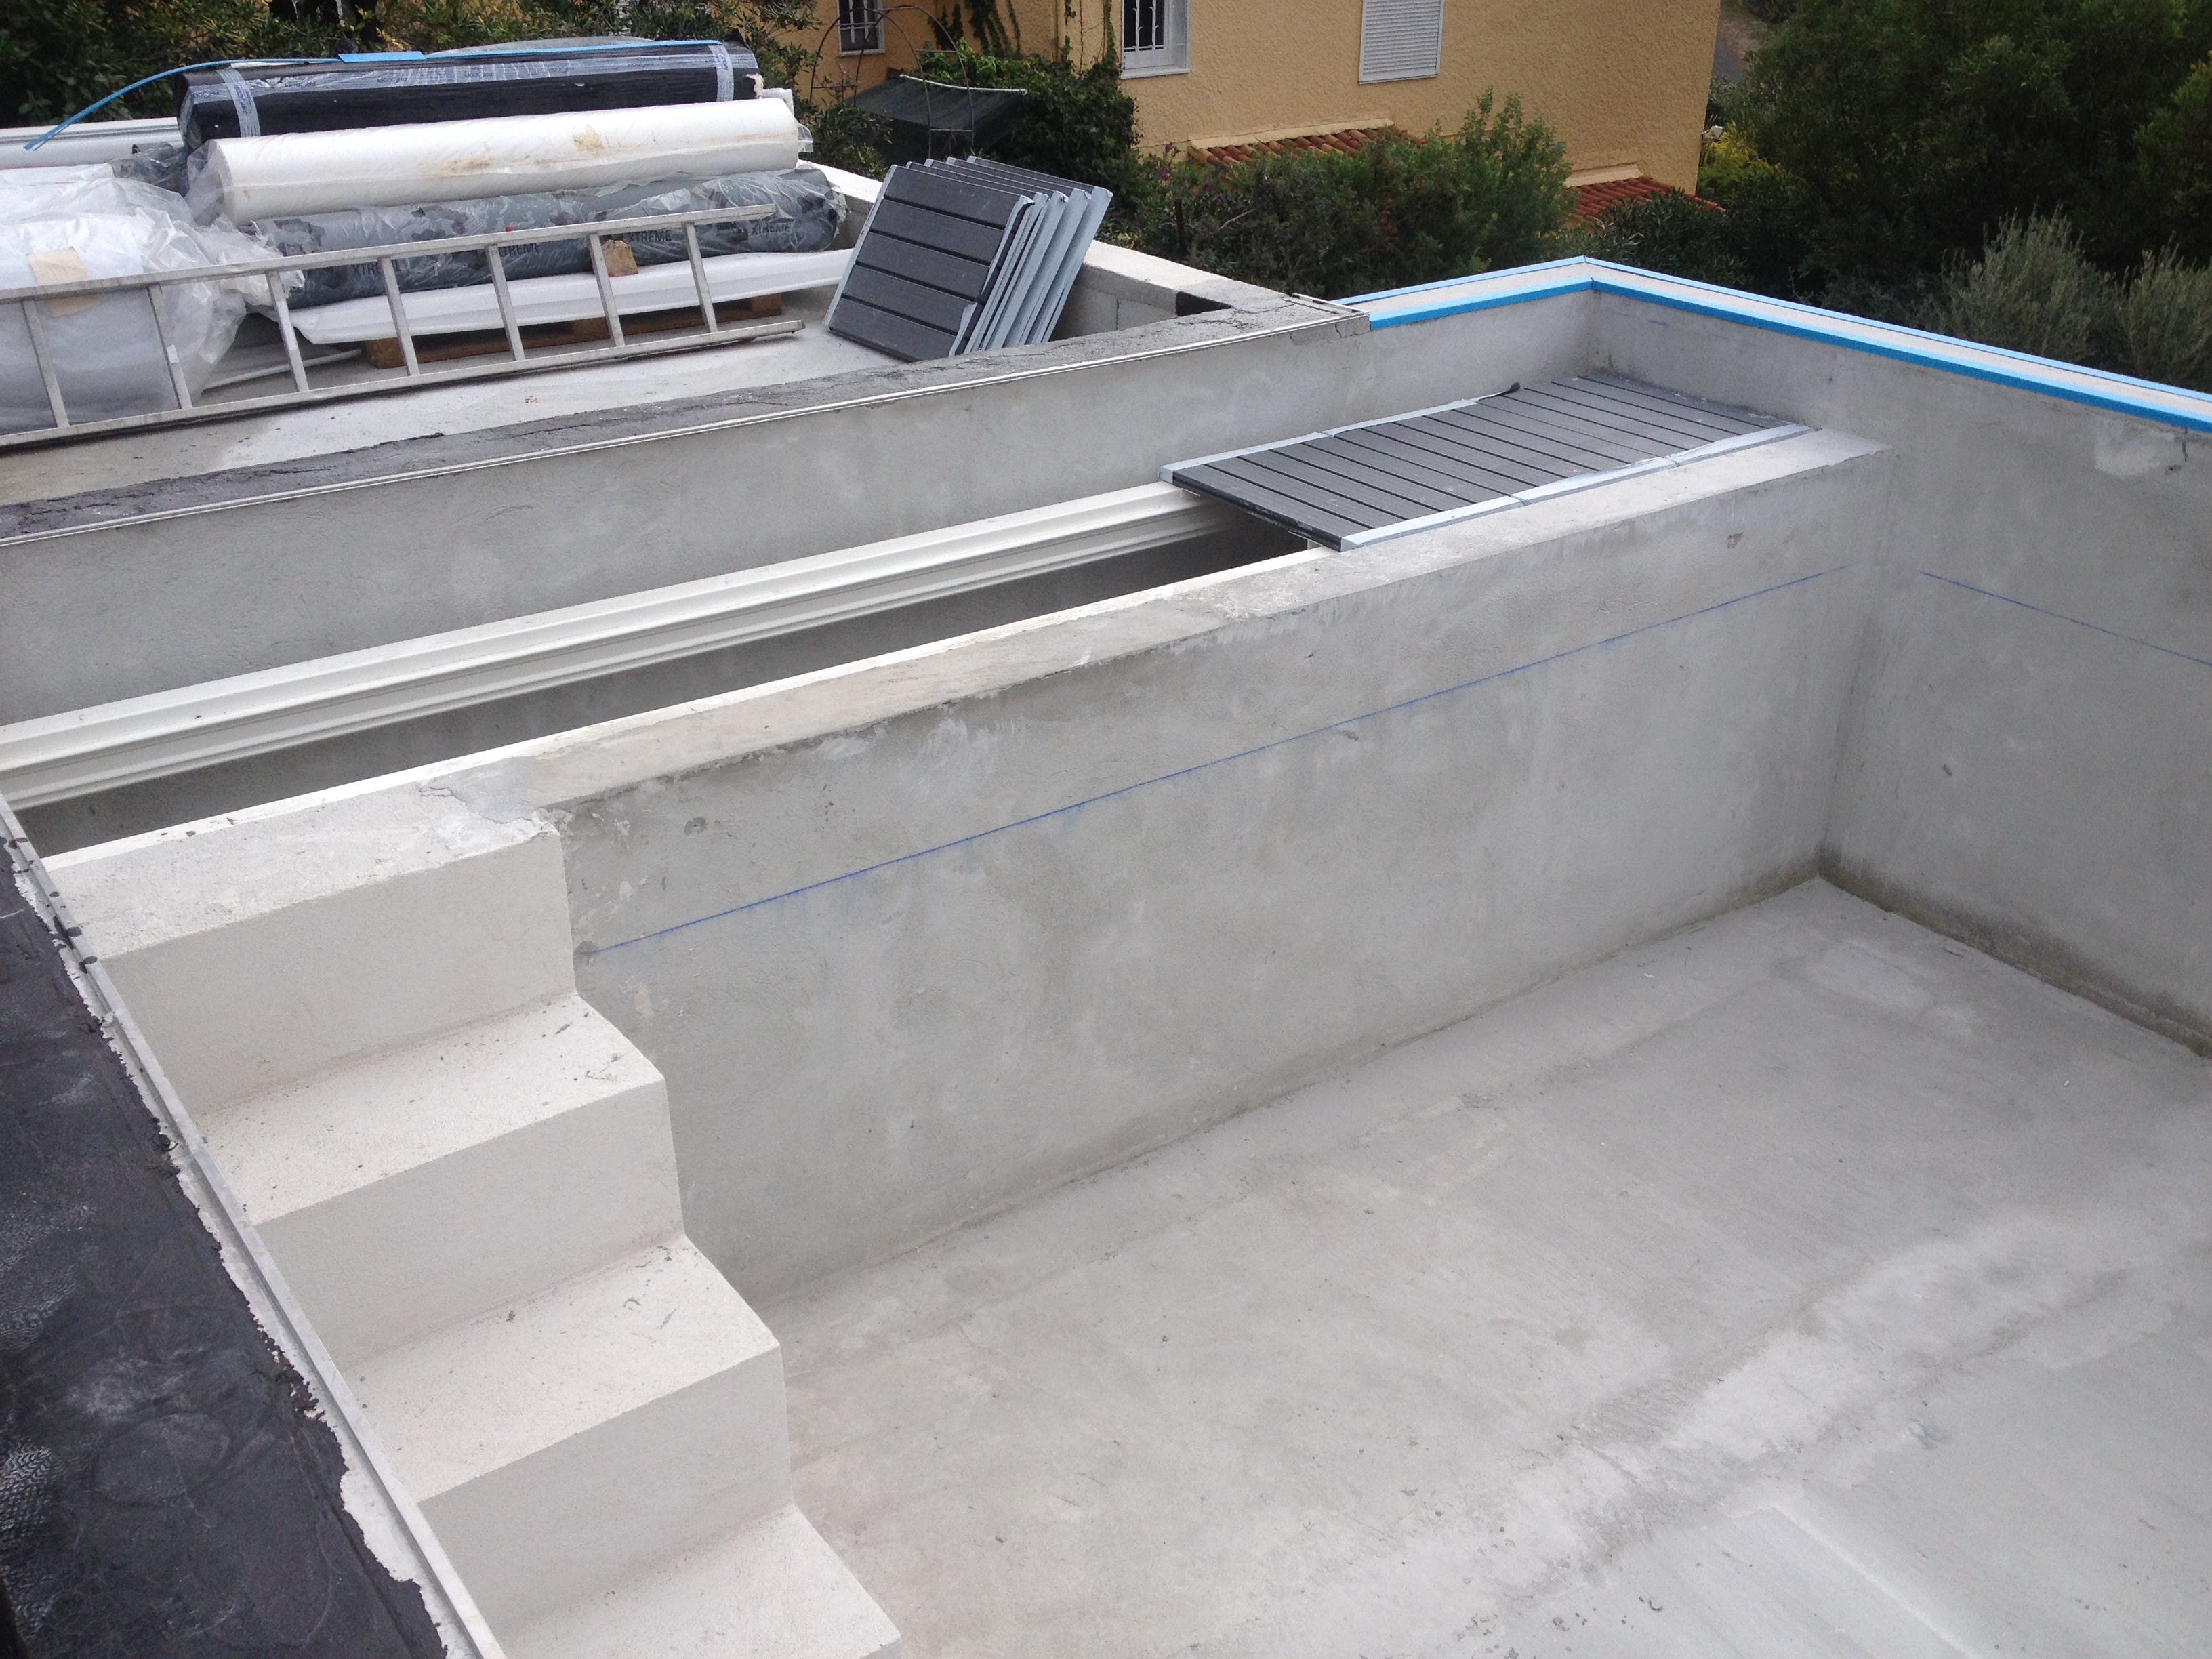 Construire une piscine en beton construction d 39 une for Construire sa piscine en kit